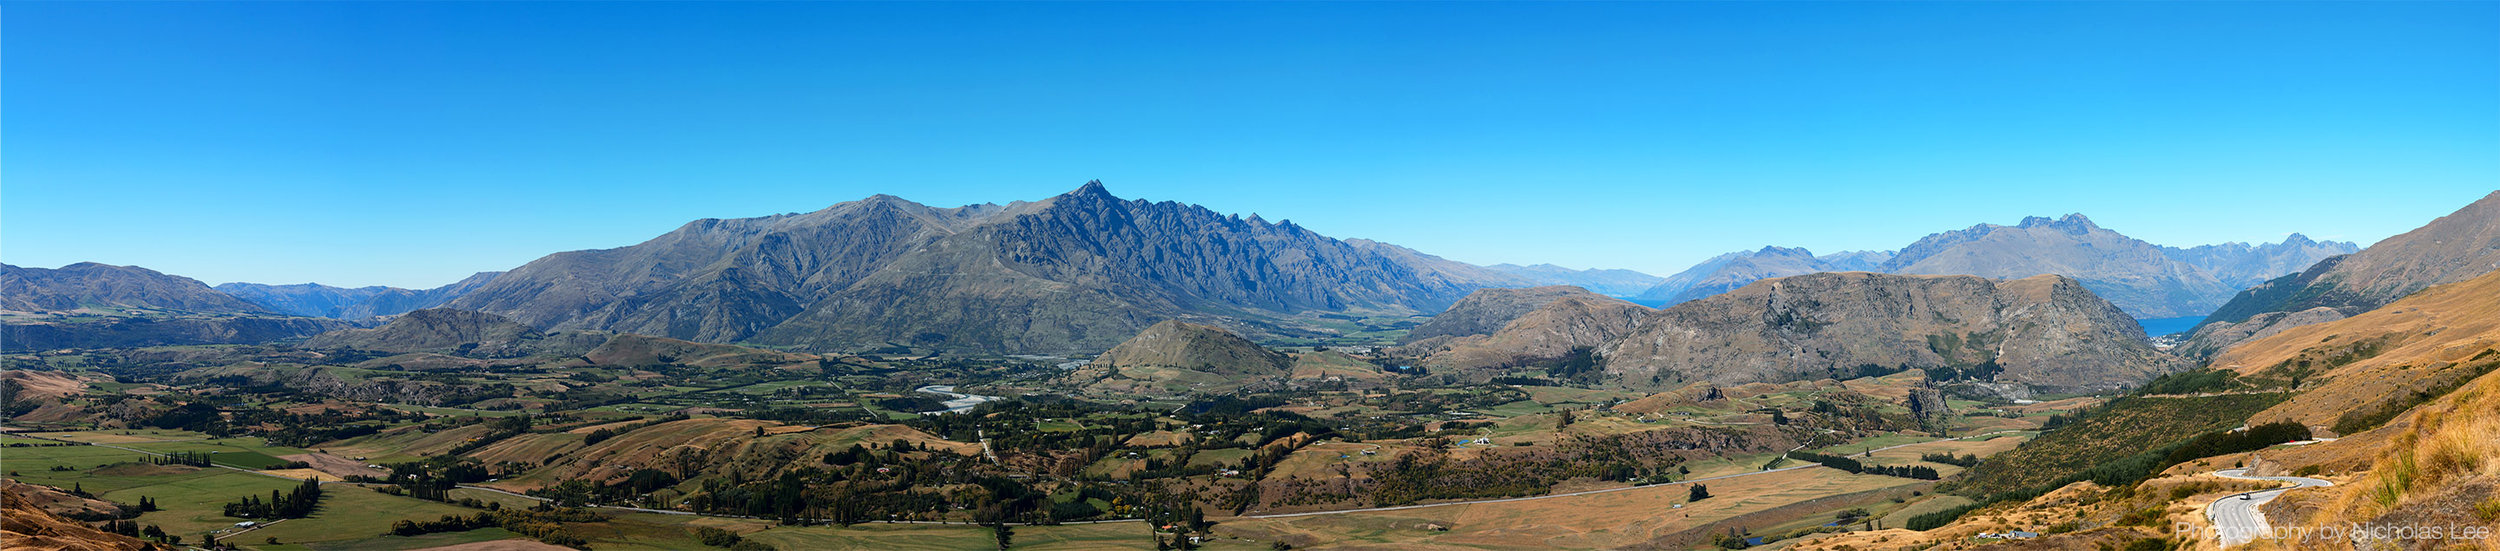 A truly remarkable panoramic shot of The Remarkables by  N icholas Lee (photographer of  Furry Photos )   Who was on Coronet Peak in early Autumn and captured the subtle shades of colours. The Remarkables mountain range and Coronet Peak are not just well known ski regions but also popular for off-season activities. Do you know that The Remarkable was featured as the slopes of Dimrill Dale in the Lord of the Rings where Aragorn led the Fellowship to Lothlorien after the Mines of Moria? Both The Remarkables and Coronet Peak are located in Otago, a south-eastern region on New Zealand's South Island, which entices adventure and nature lovers with its dynamic terrain of mountain ranges, lakes, beaches and diverse wildlife!